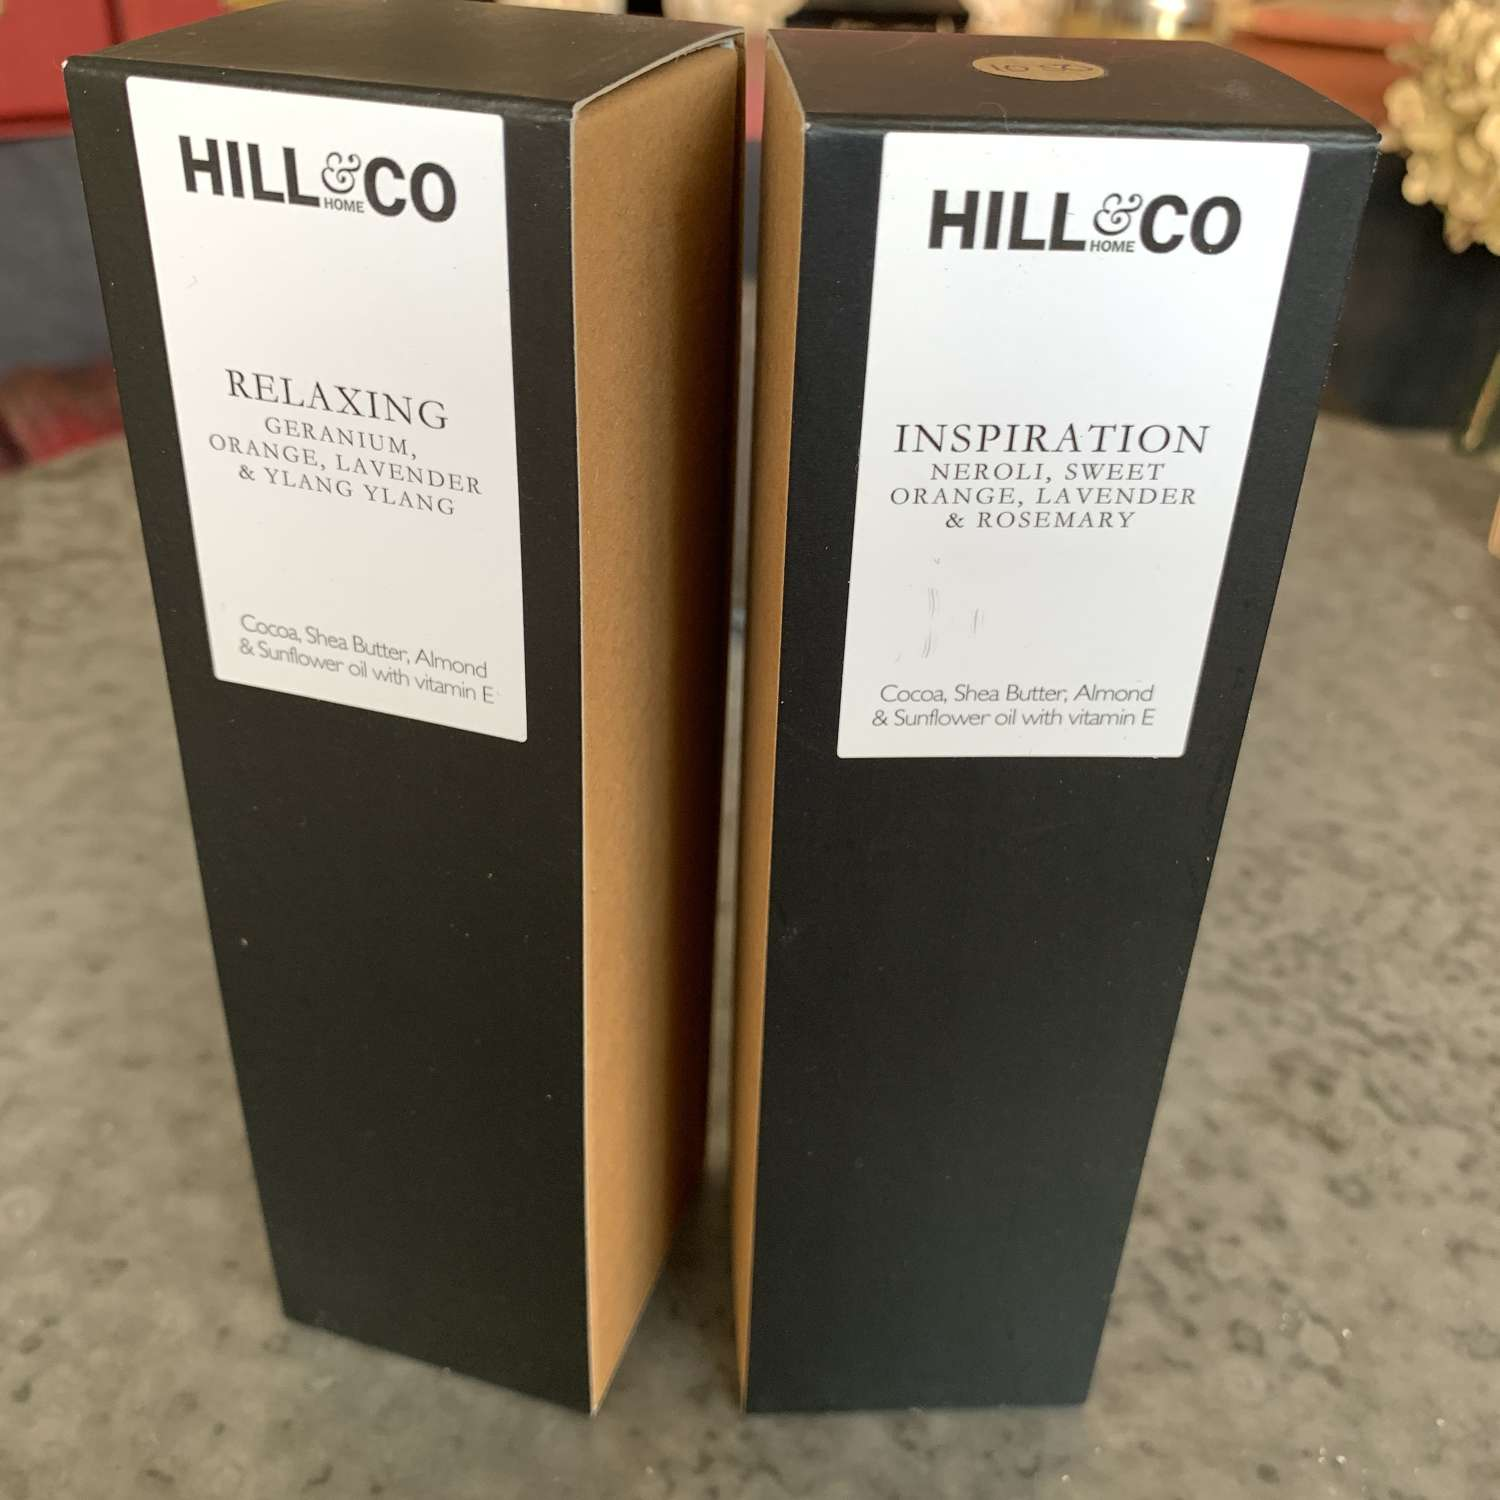 Hill & Co handcream with essential oils